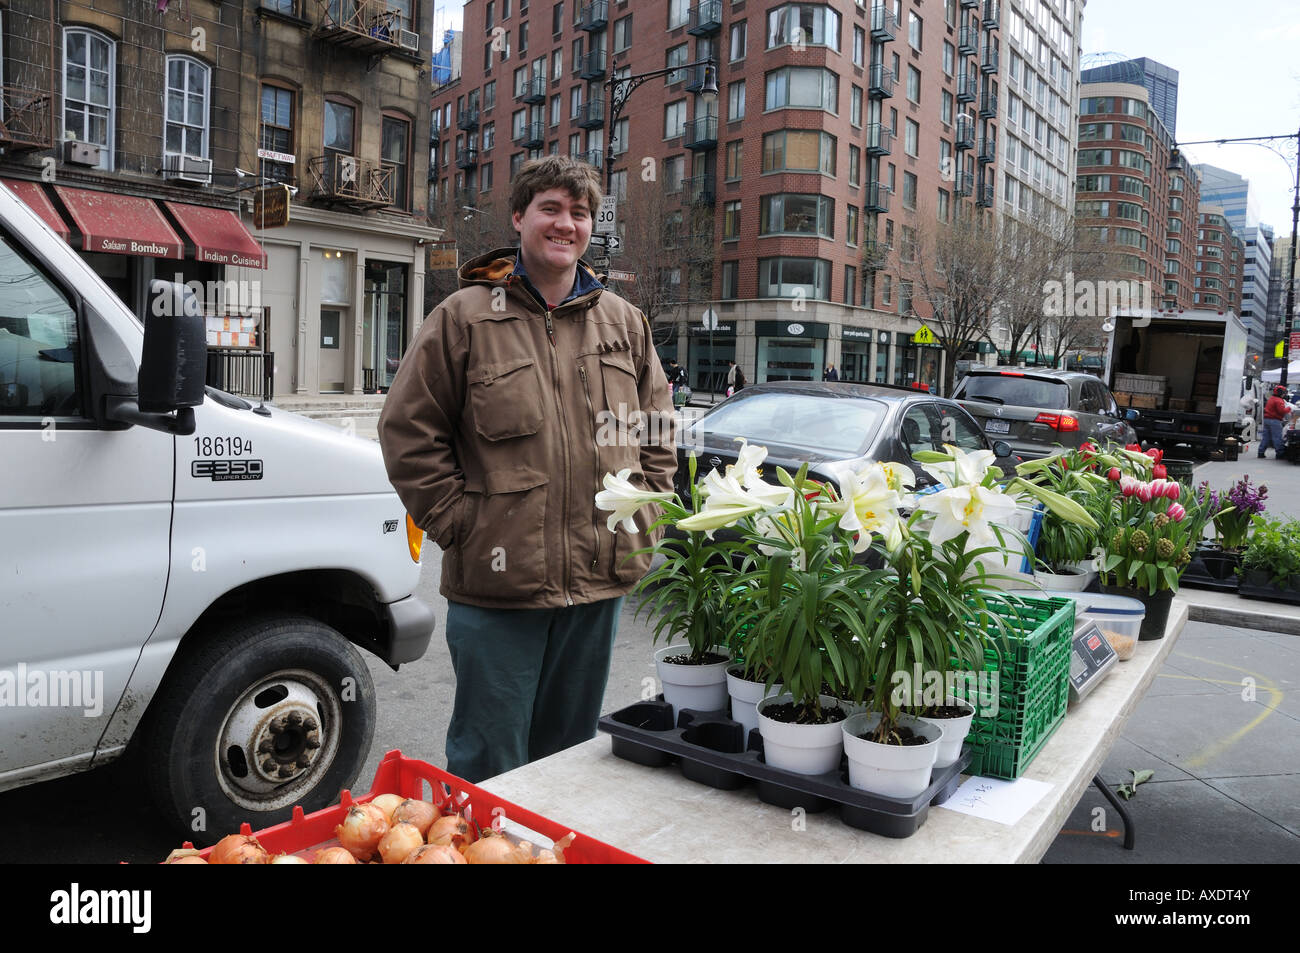 At the Greenmarket in Tribeca, Ryan Denerley sells produce and flowers from the John D. Madura farm in Pine Island, Stock Photo